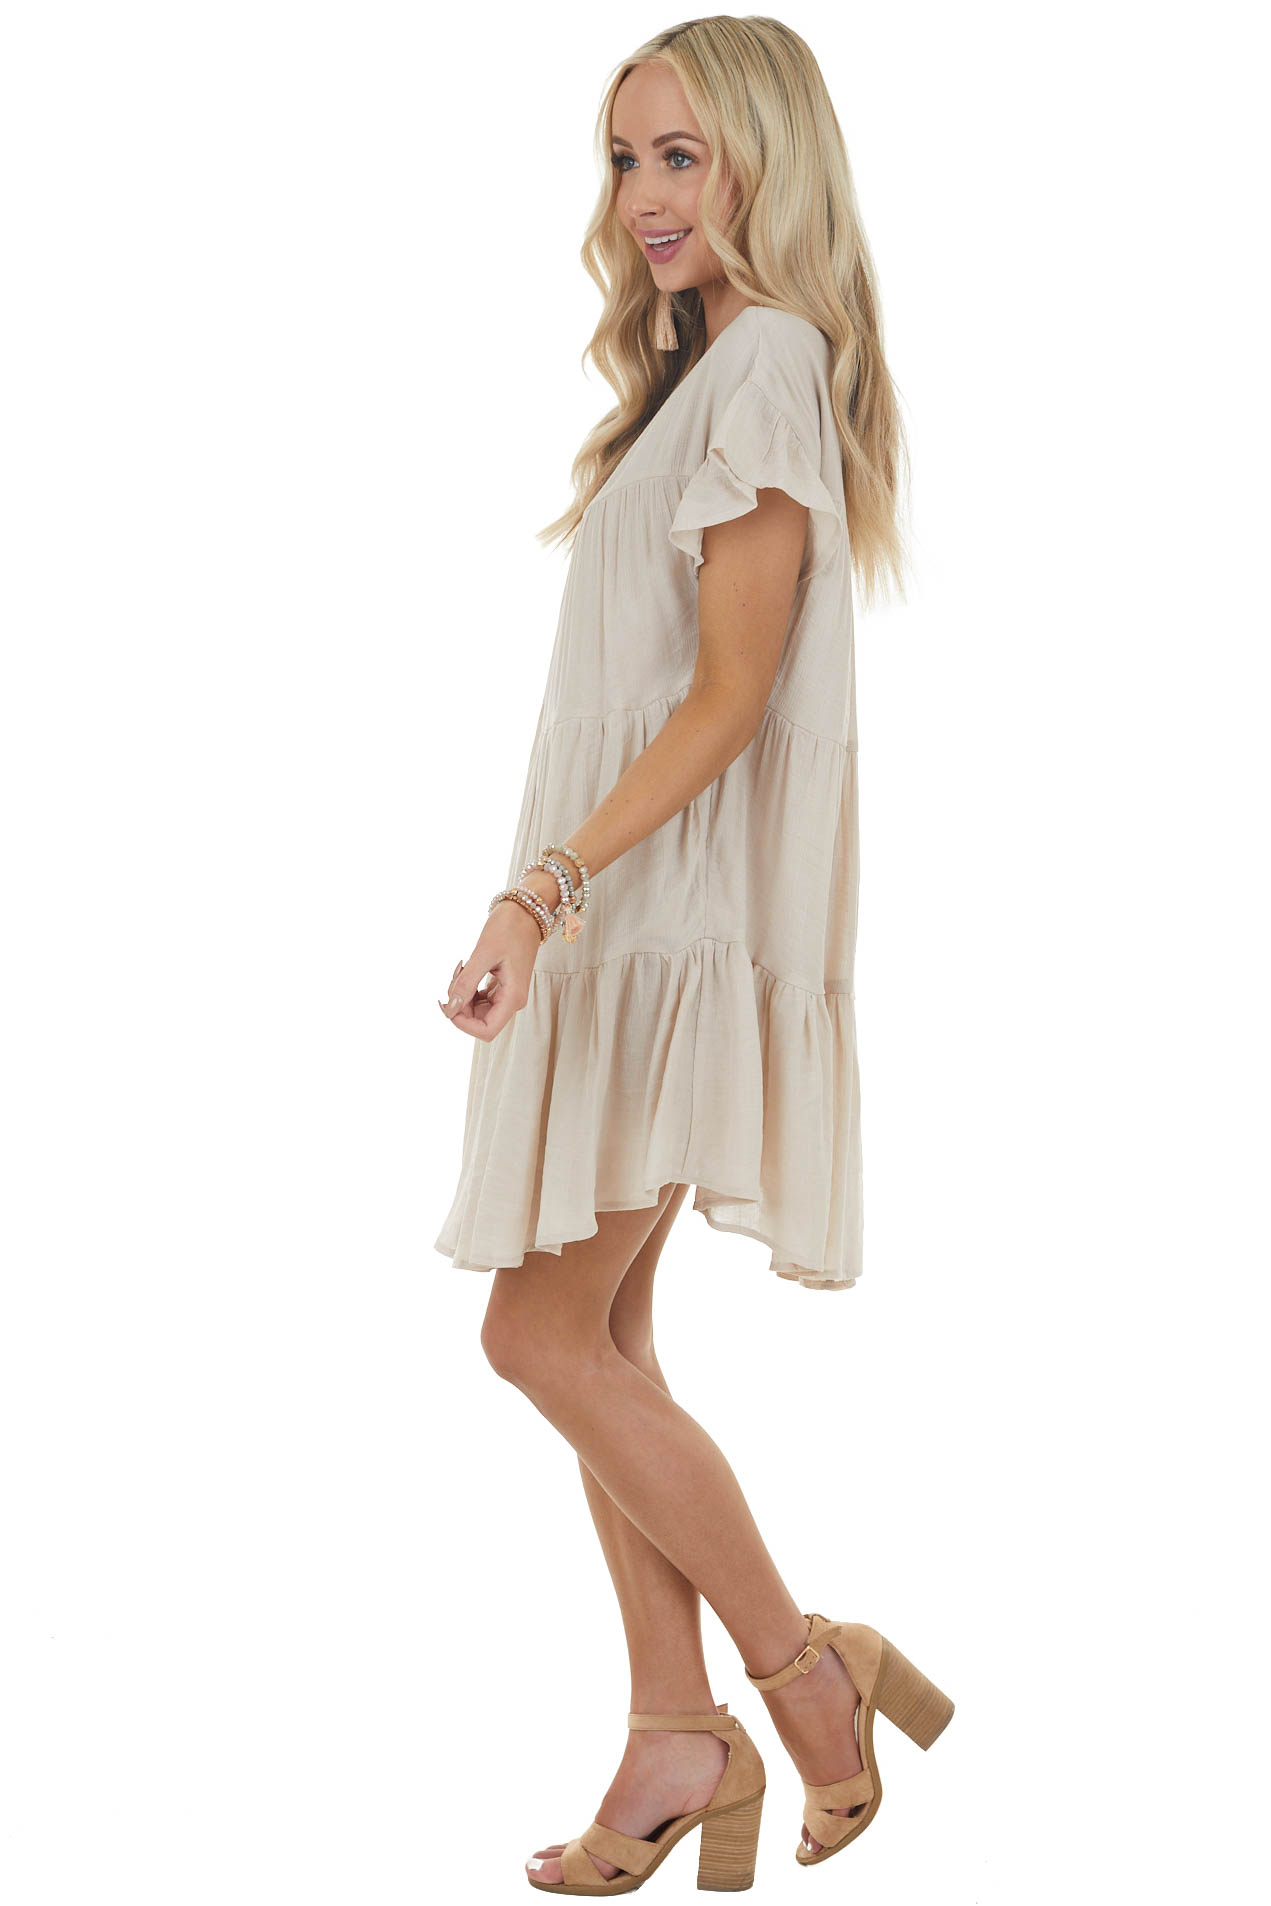 Desert Sand Tiered Babydoll Short Dress with Side Pockets